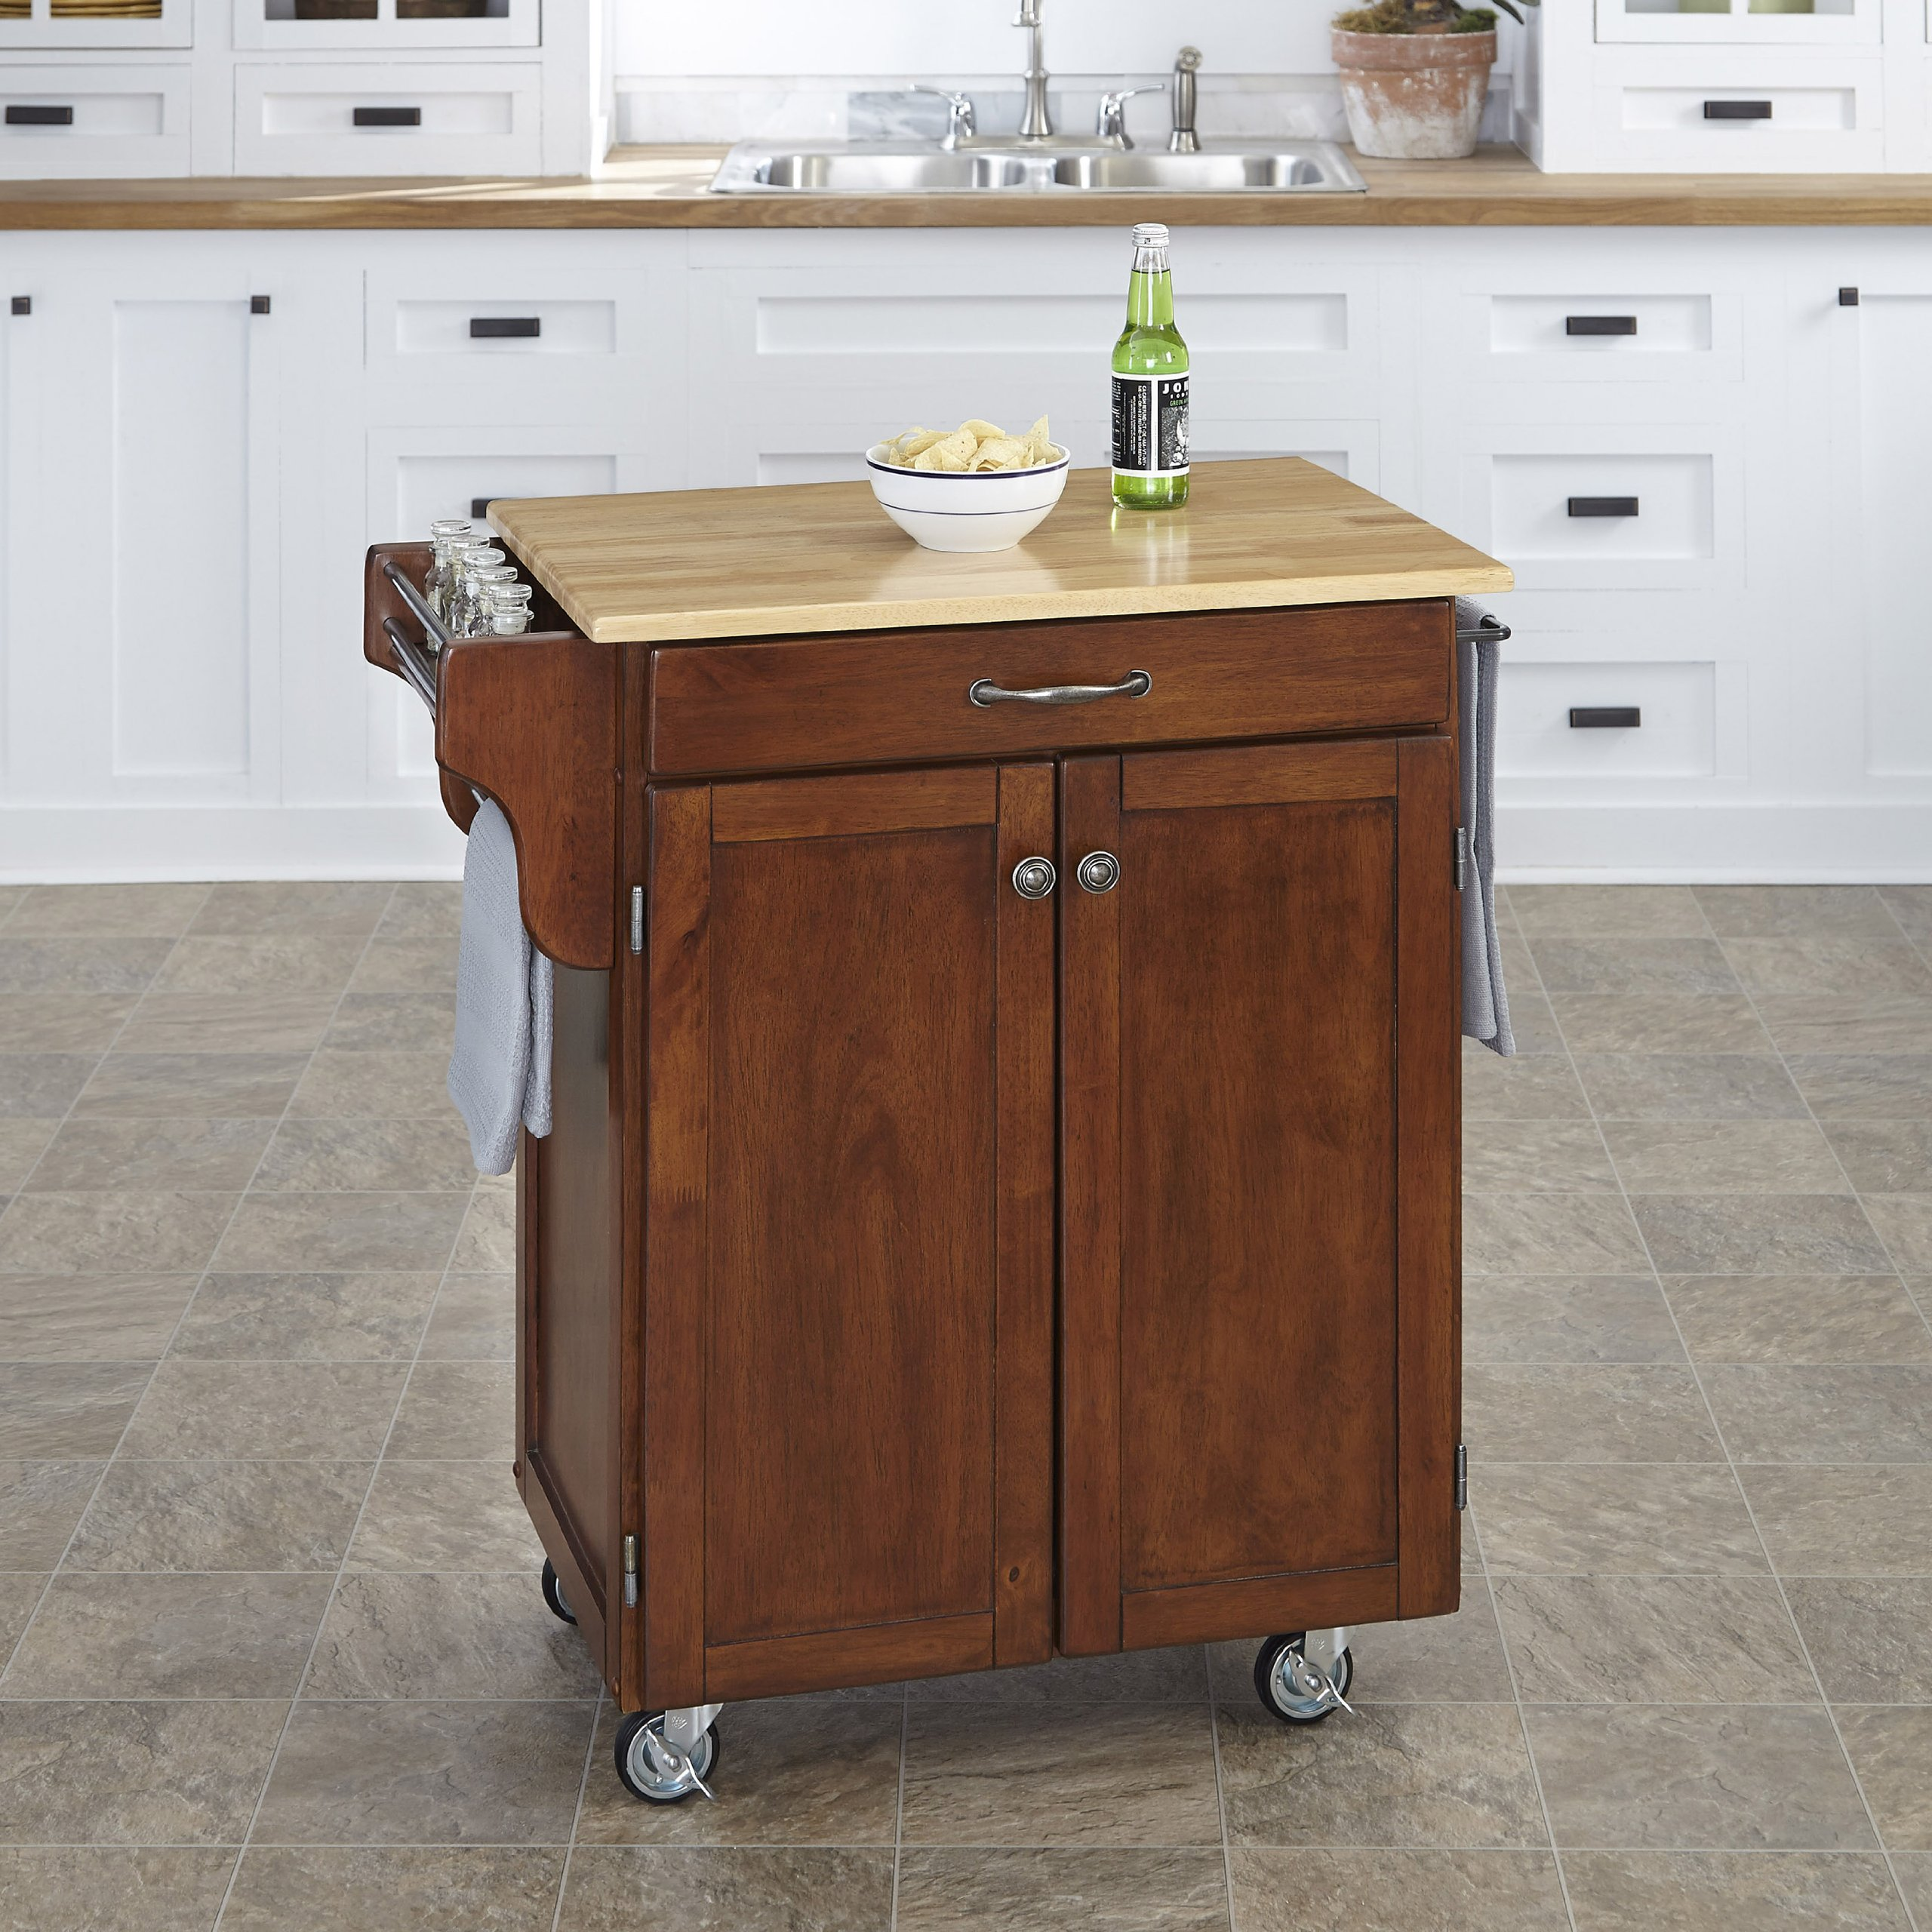 Home Styles 9001-0071 Create-a-Cart 9001 Series Cuisine Cart with Natural Wood Top, Cherry, 32-1/2-Inch by Home Styles (Image #2)